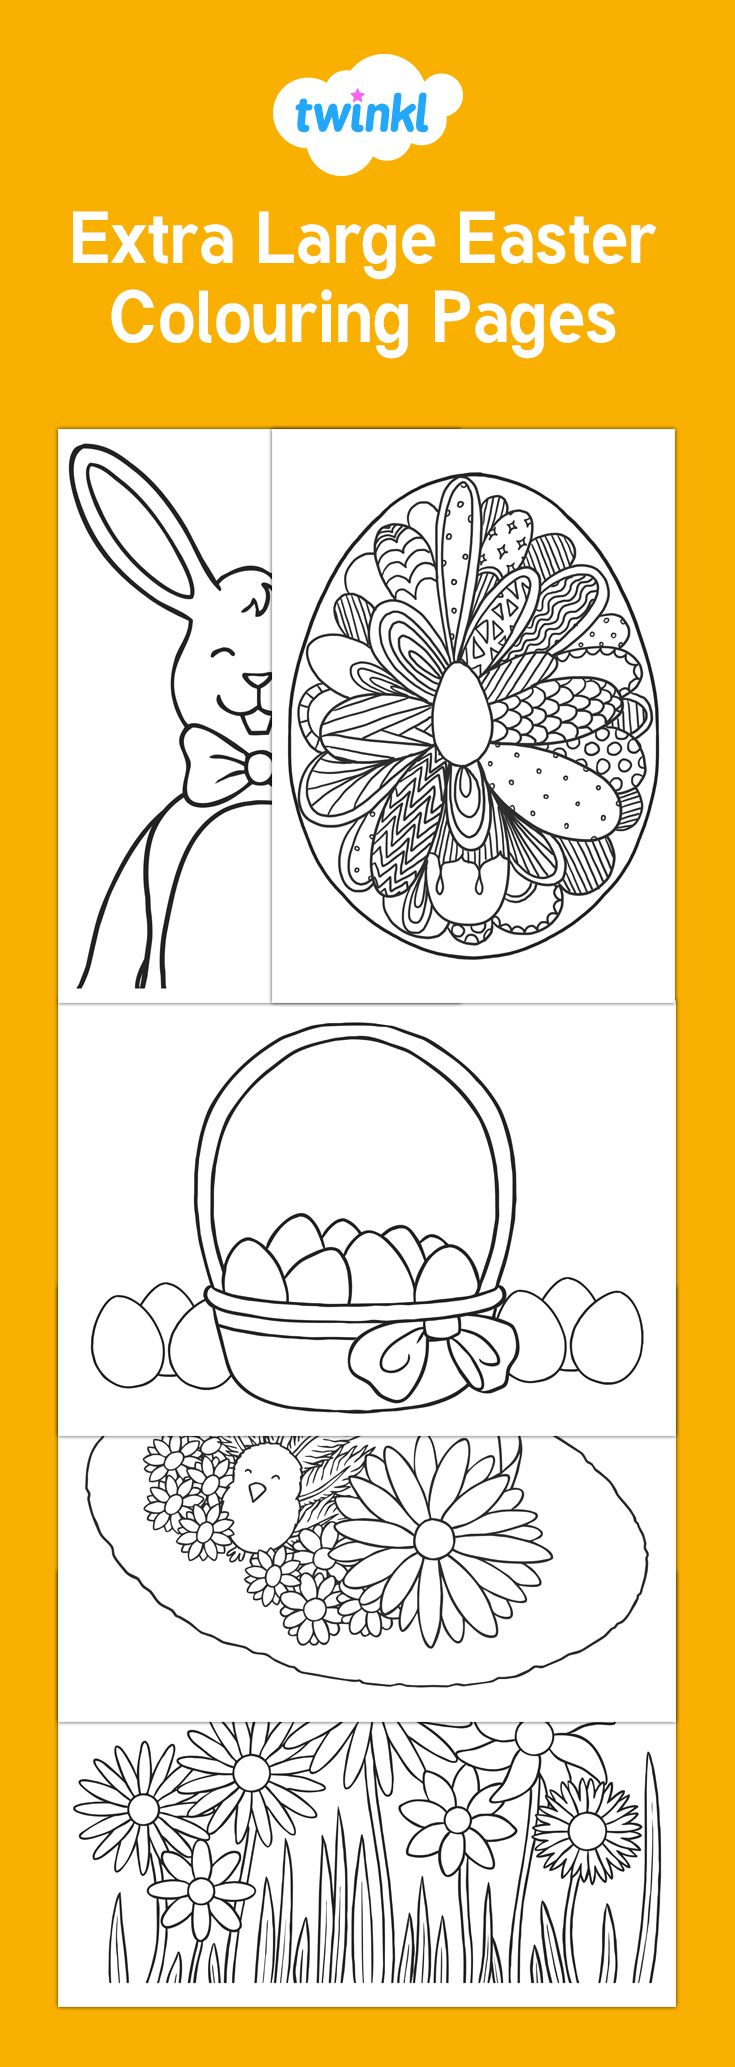 Extra Large Easter Colouring Pages Easter Coloring Pages Easter Colouring Colouring Pages